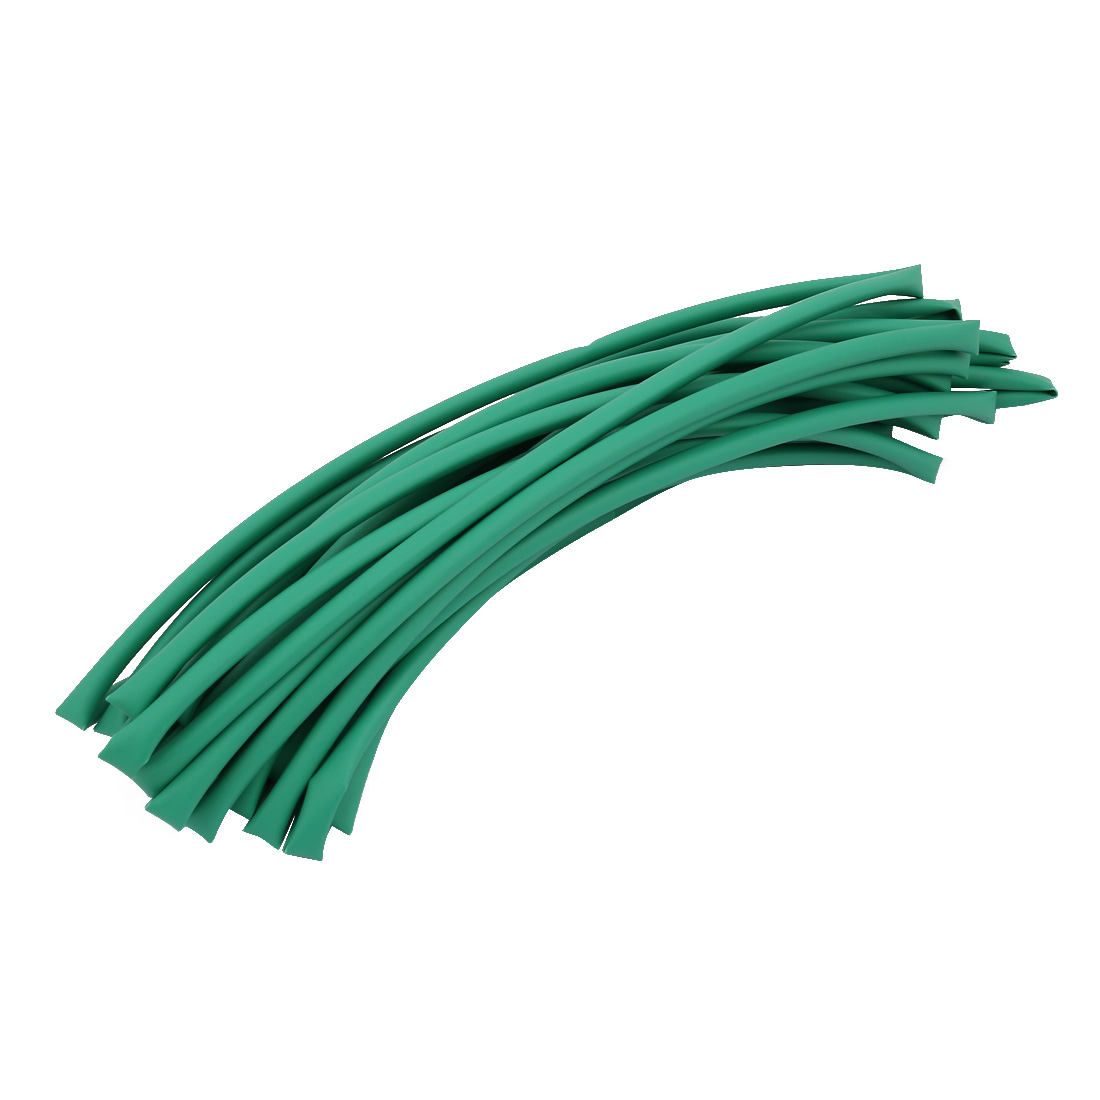 8M 0.2in Inner Dia Polyolefin Flame Retardant Tube Green for Wire Repairing